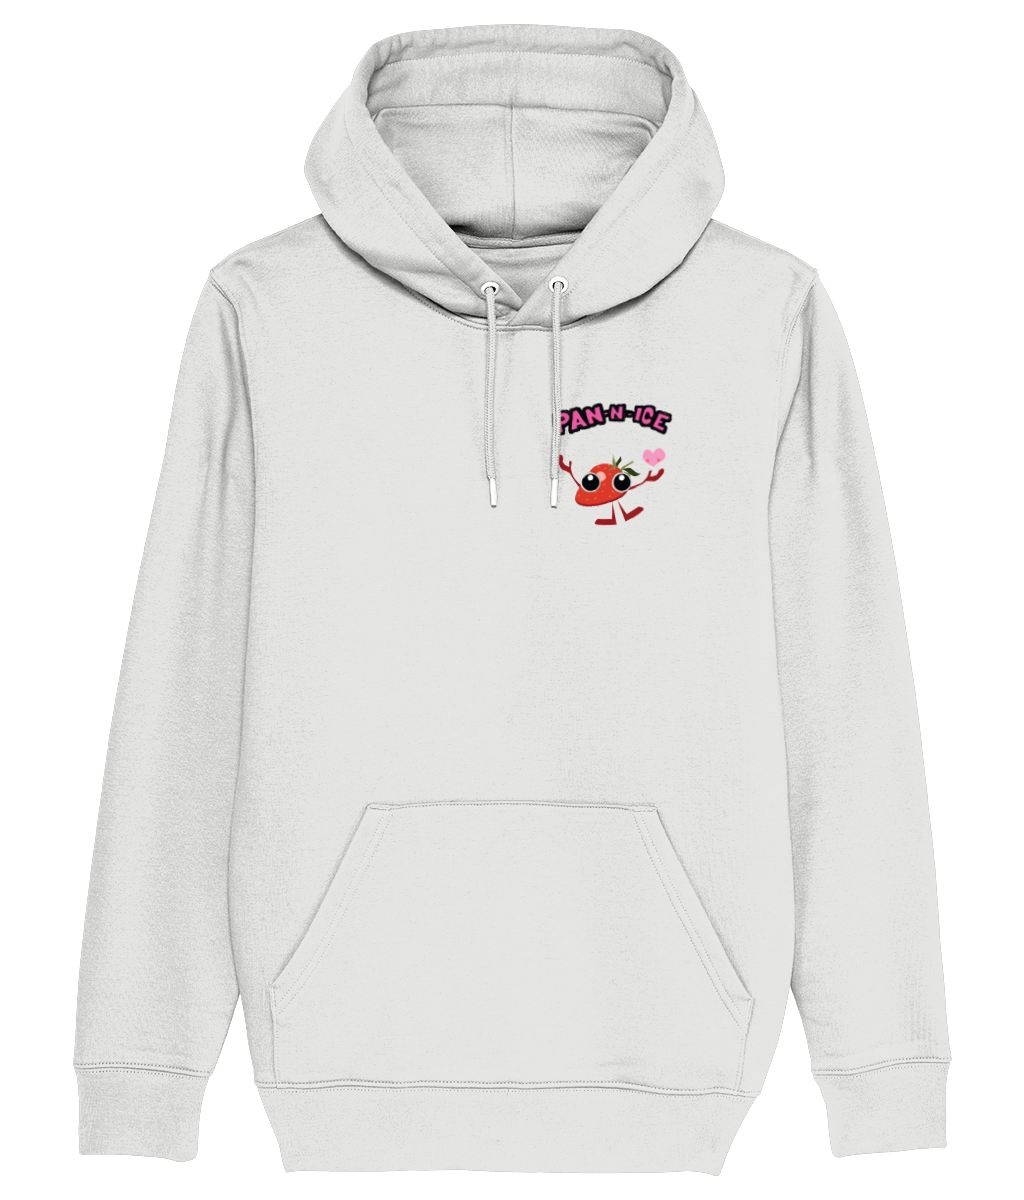 Unisex strawberry love hoodie